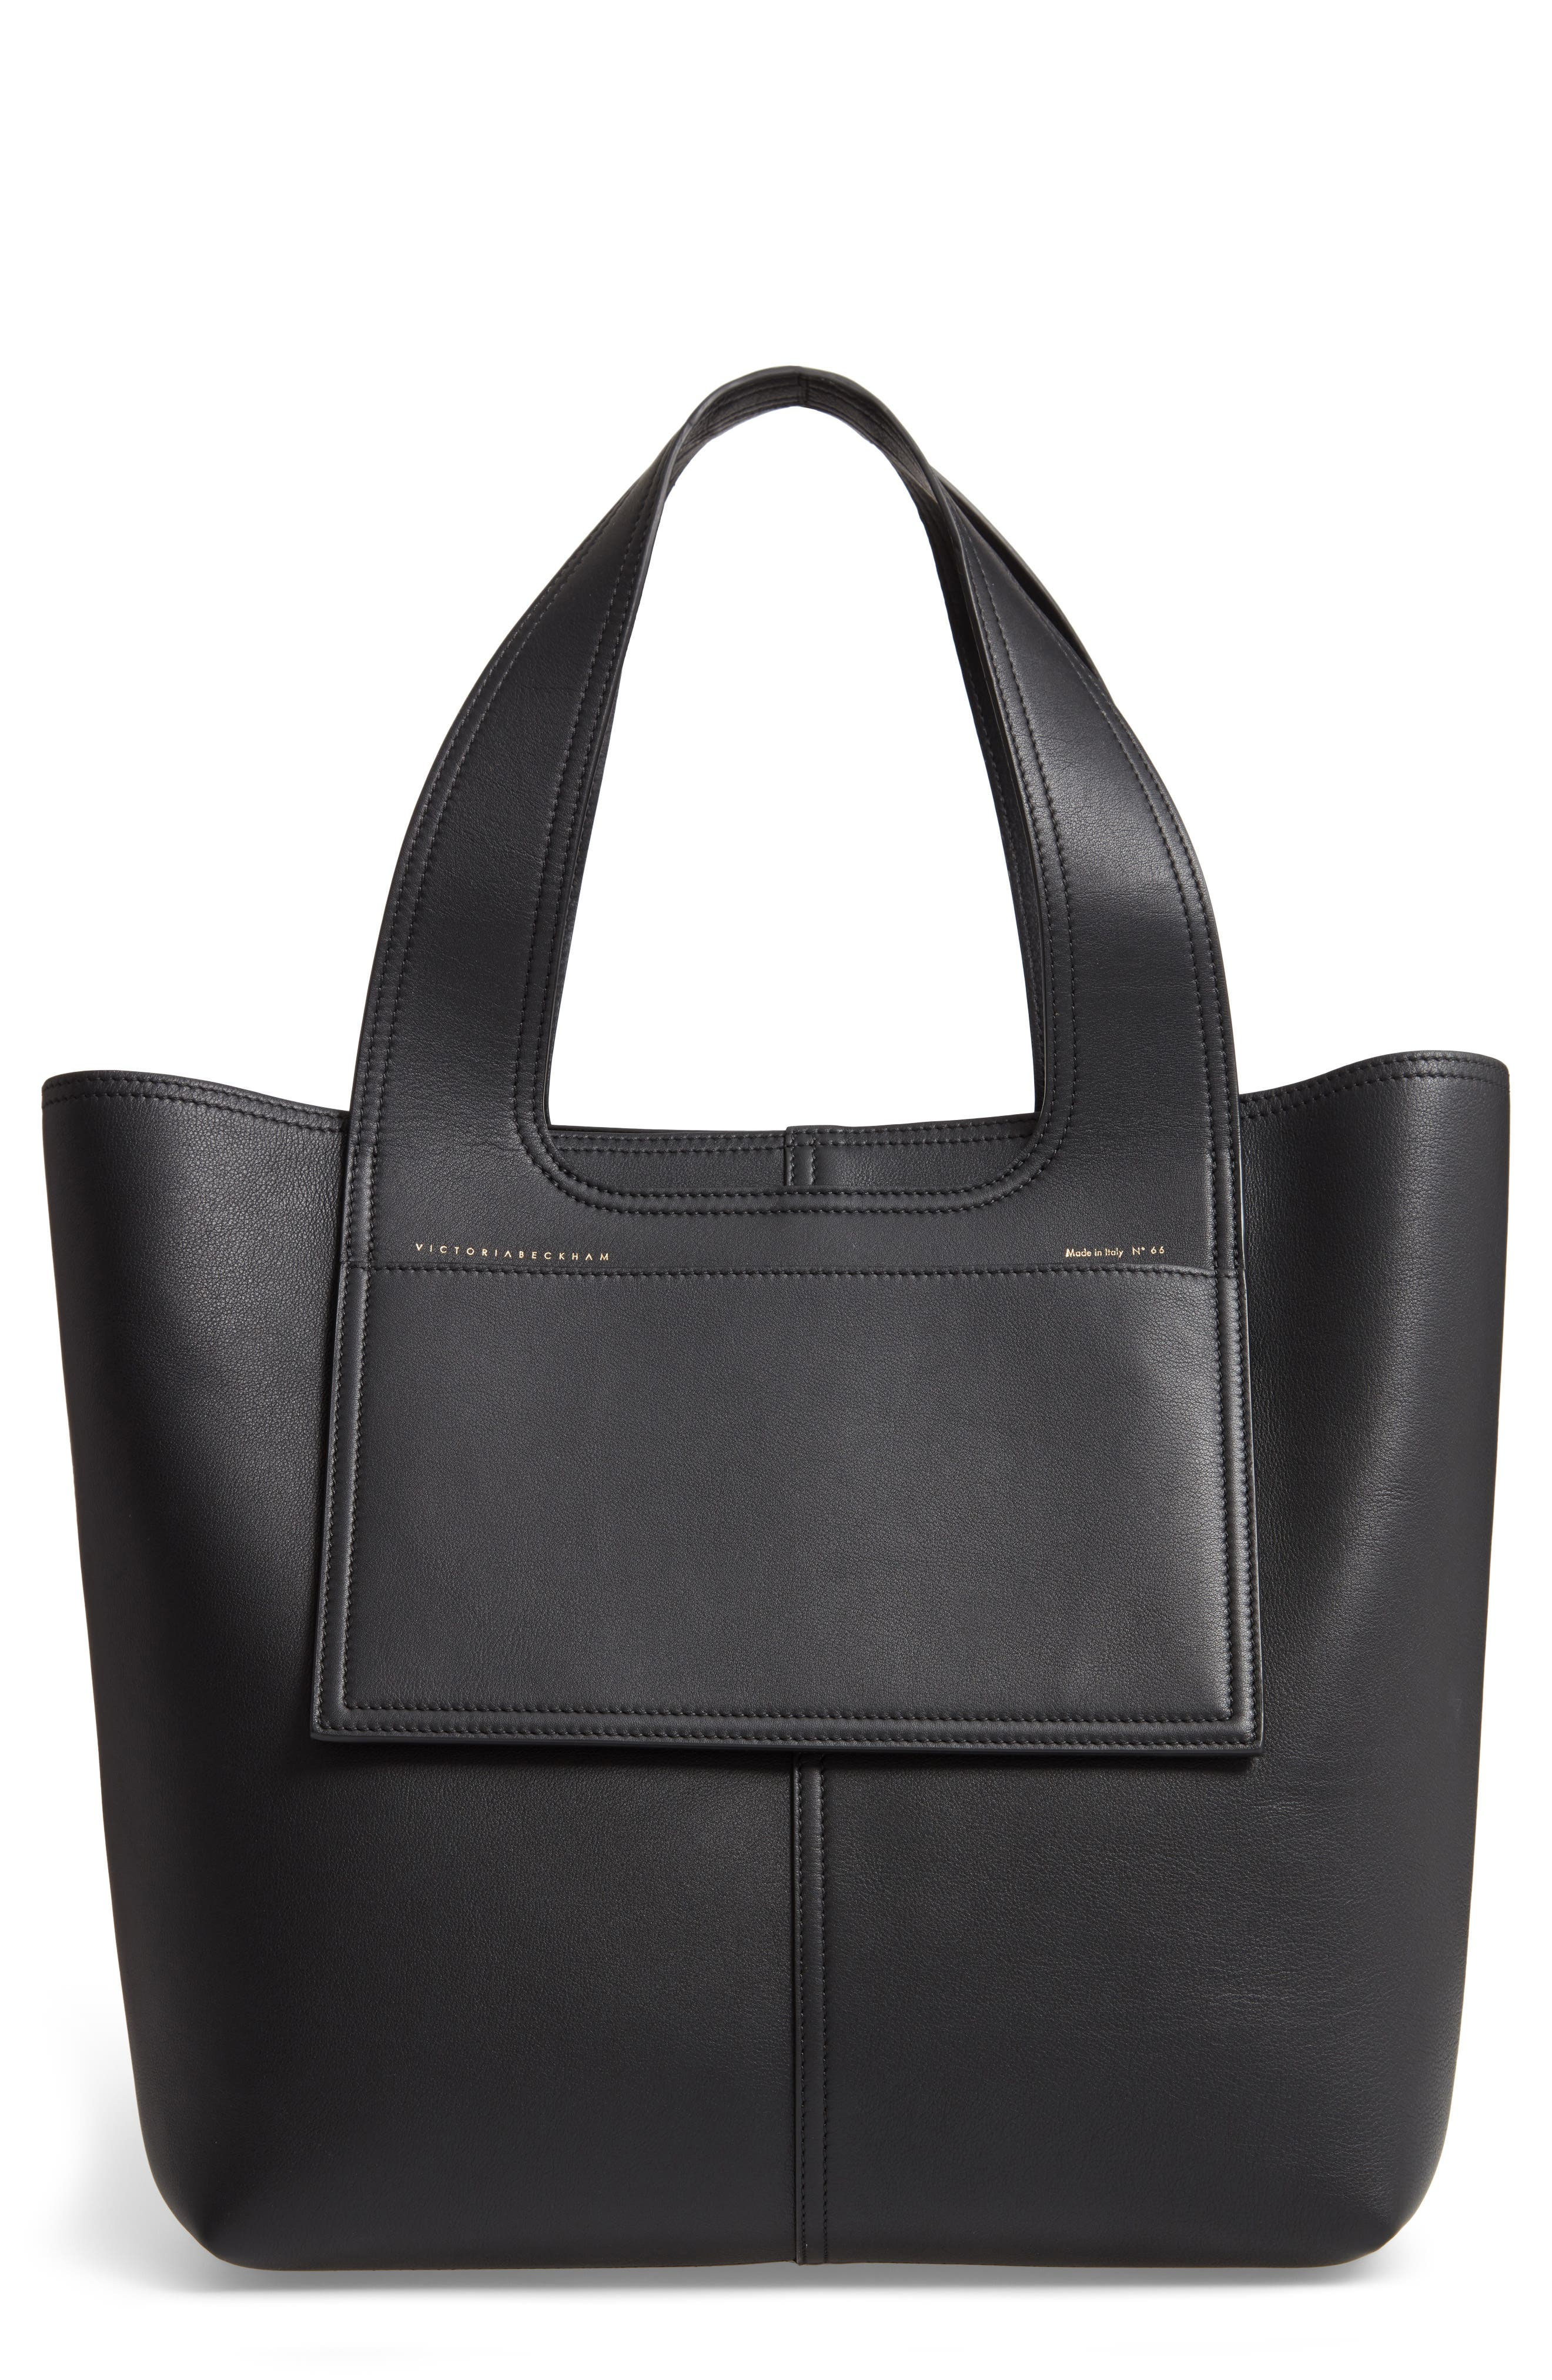 VICTORIA BECKHAM, Apron Leather Tote, Main thumbnail 1, color, 001